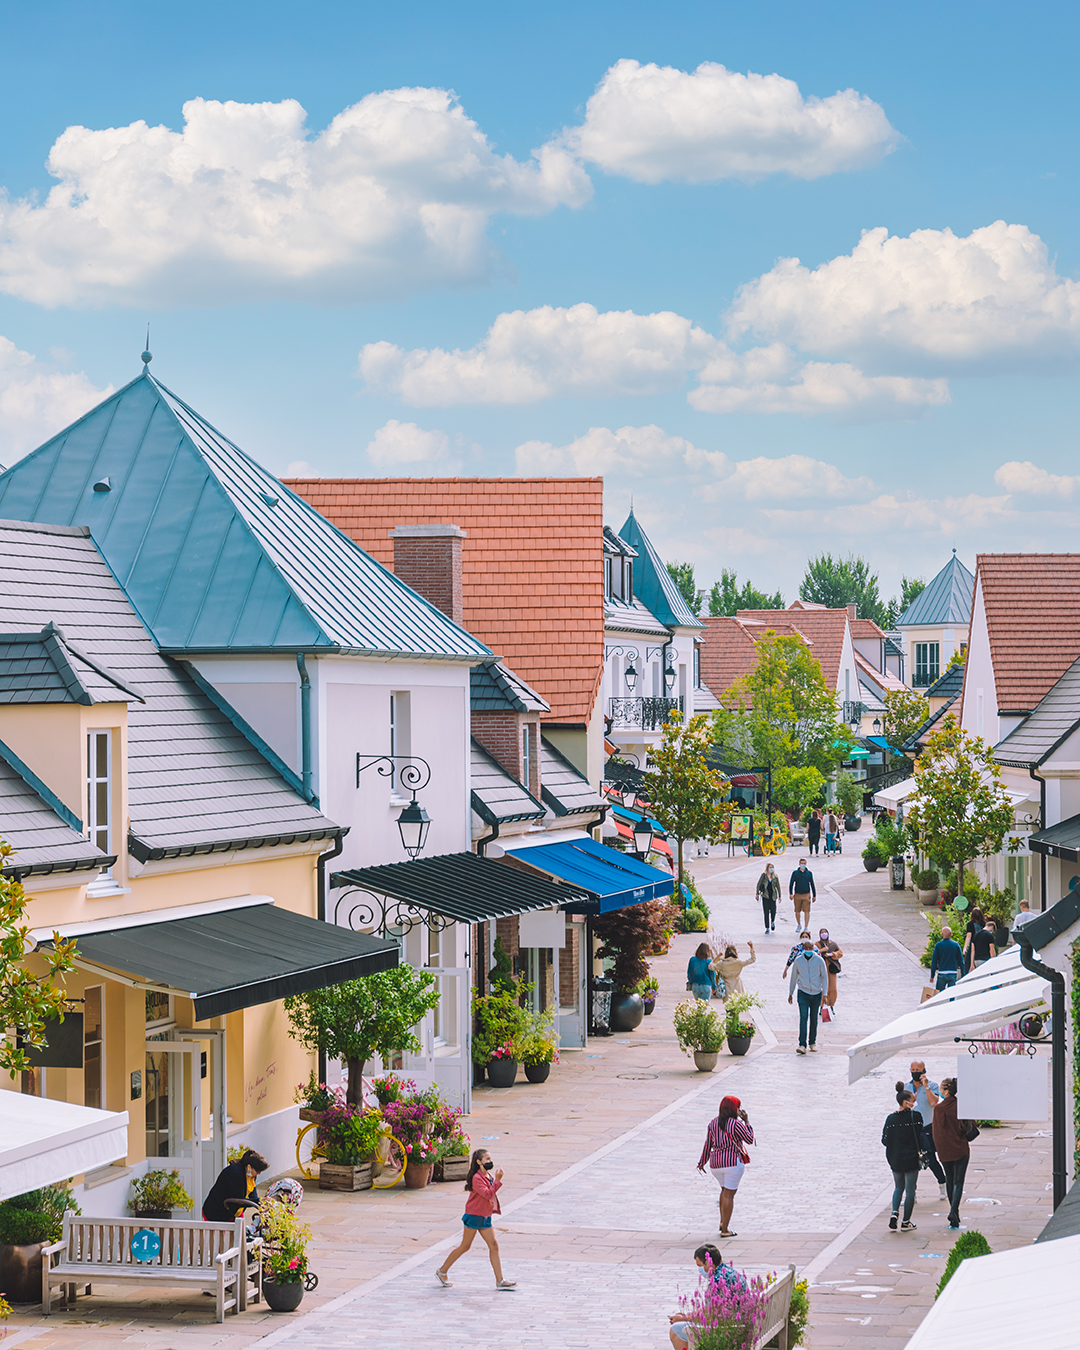 Luxury Shopping Day Experience at La Vallée Village